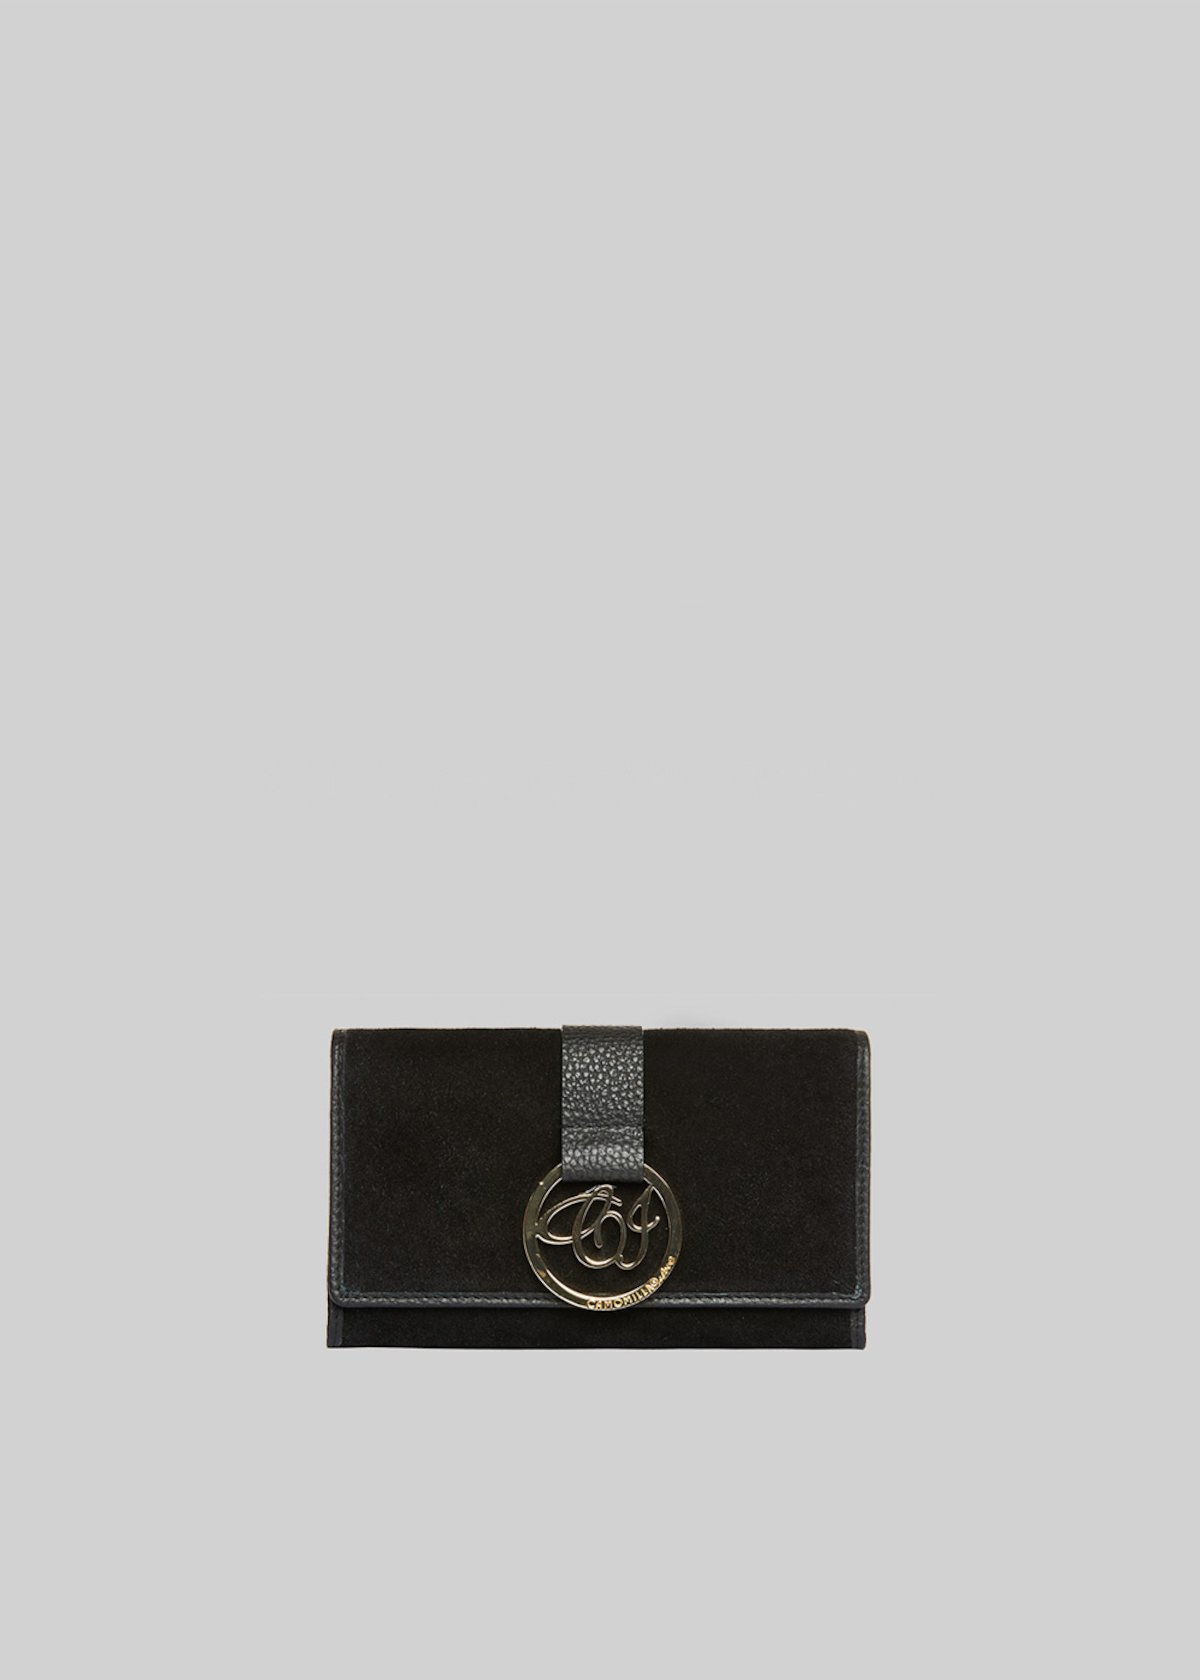 Pinky wallet genuine suede with CI logo detail - Black